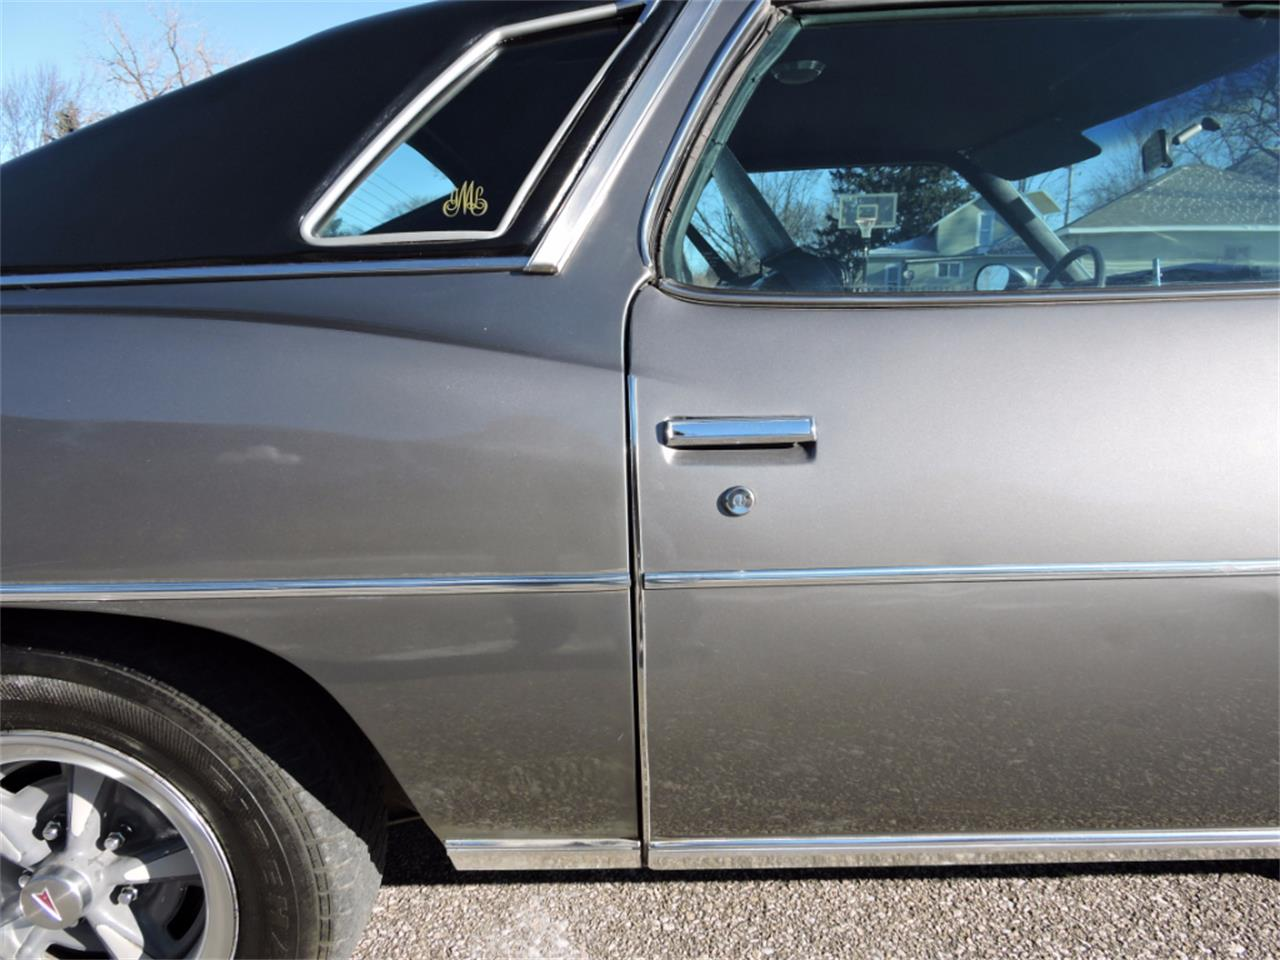 1977 Pontiac Grand LeMans for sale in Greene, IA – photo 62